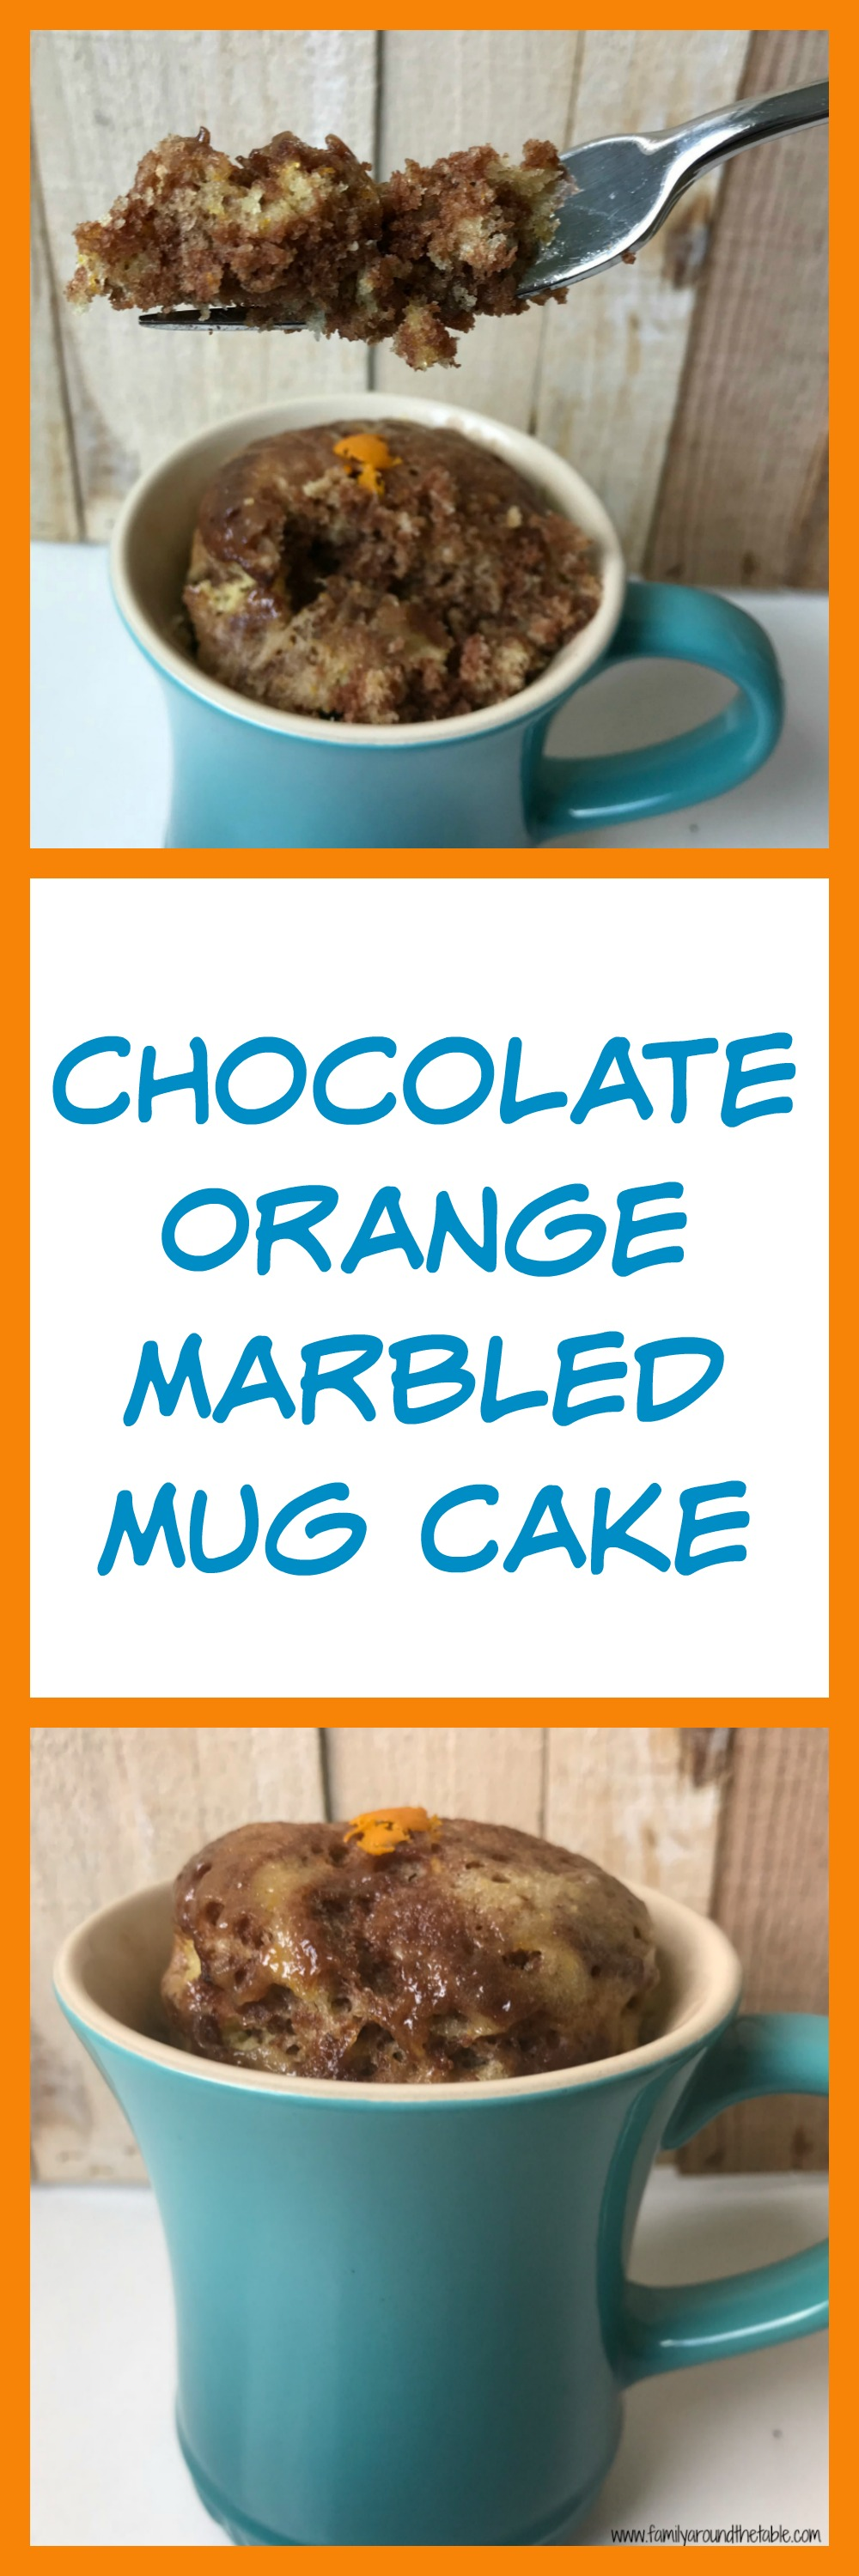 Mug cake is perfect when you just need a little something sweet.